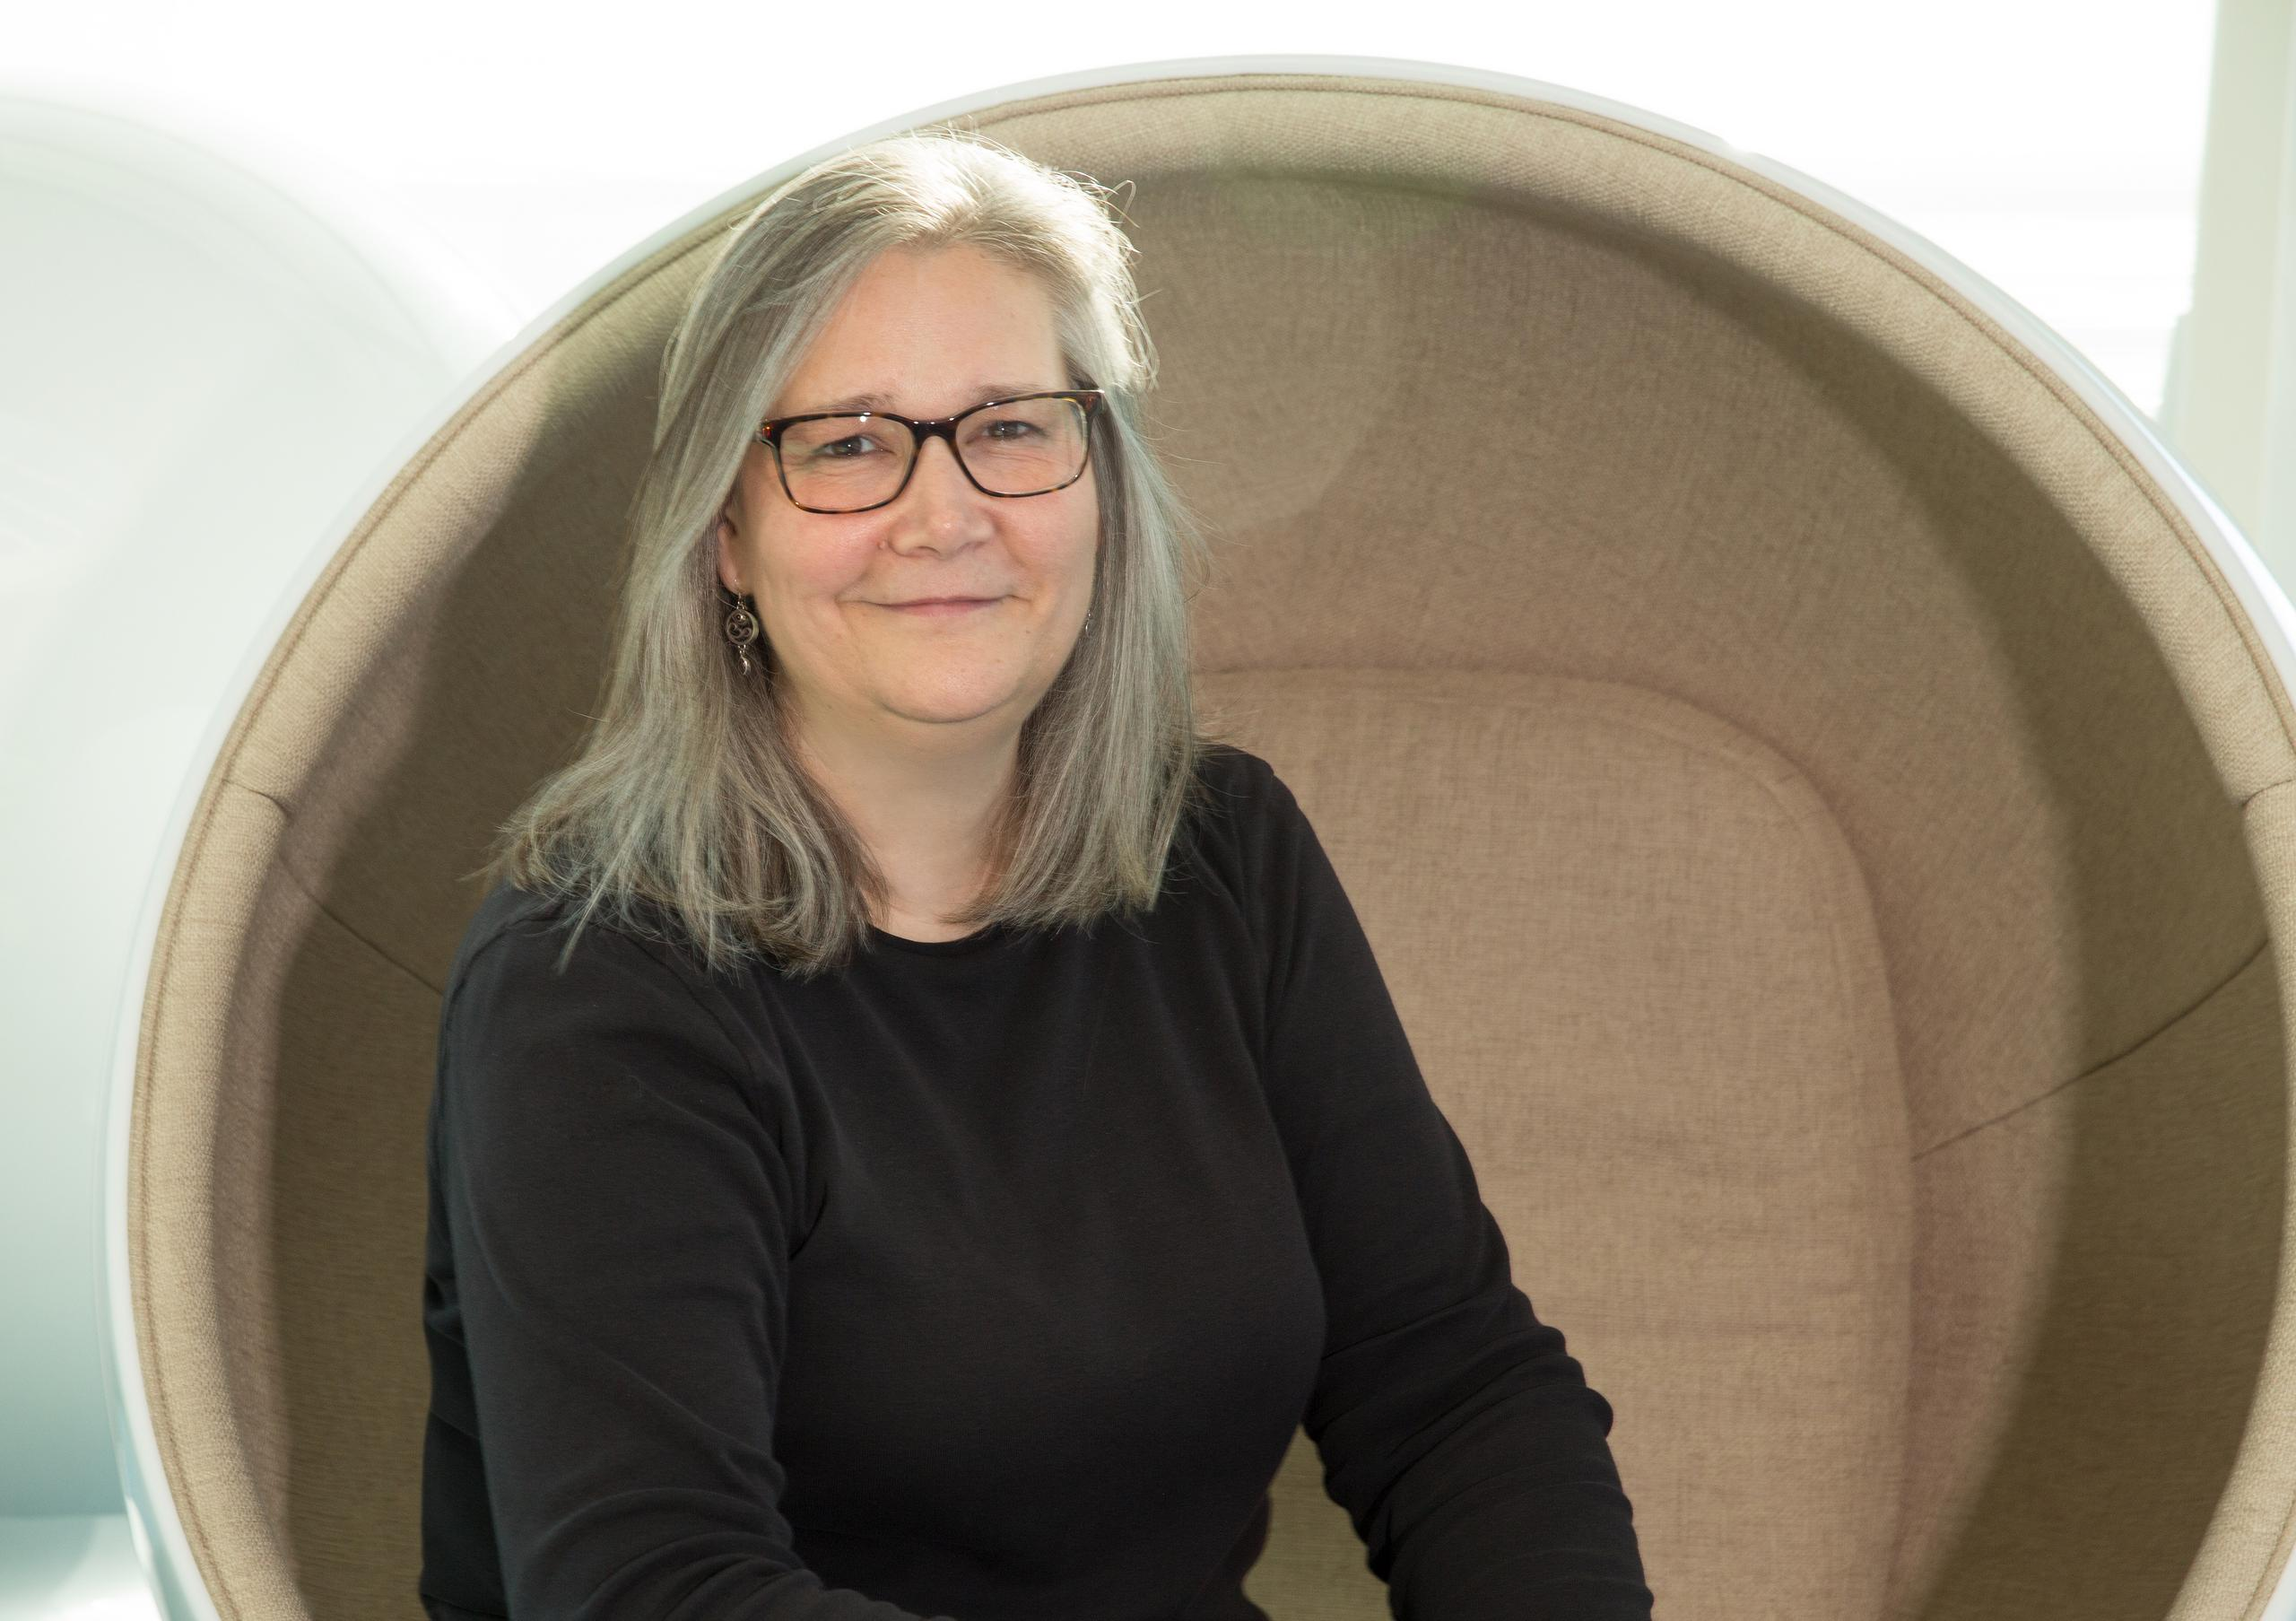 Skydance Media taps Amy Hennig to launch new game studio for story-based games